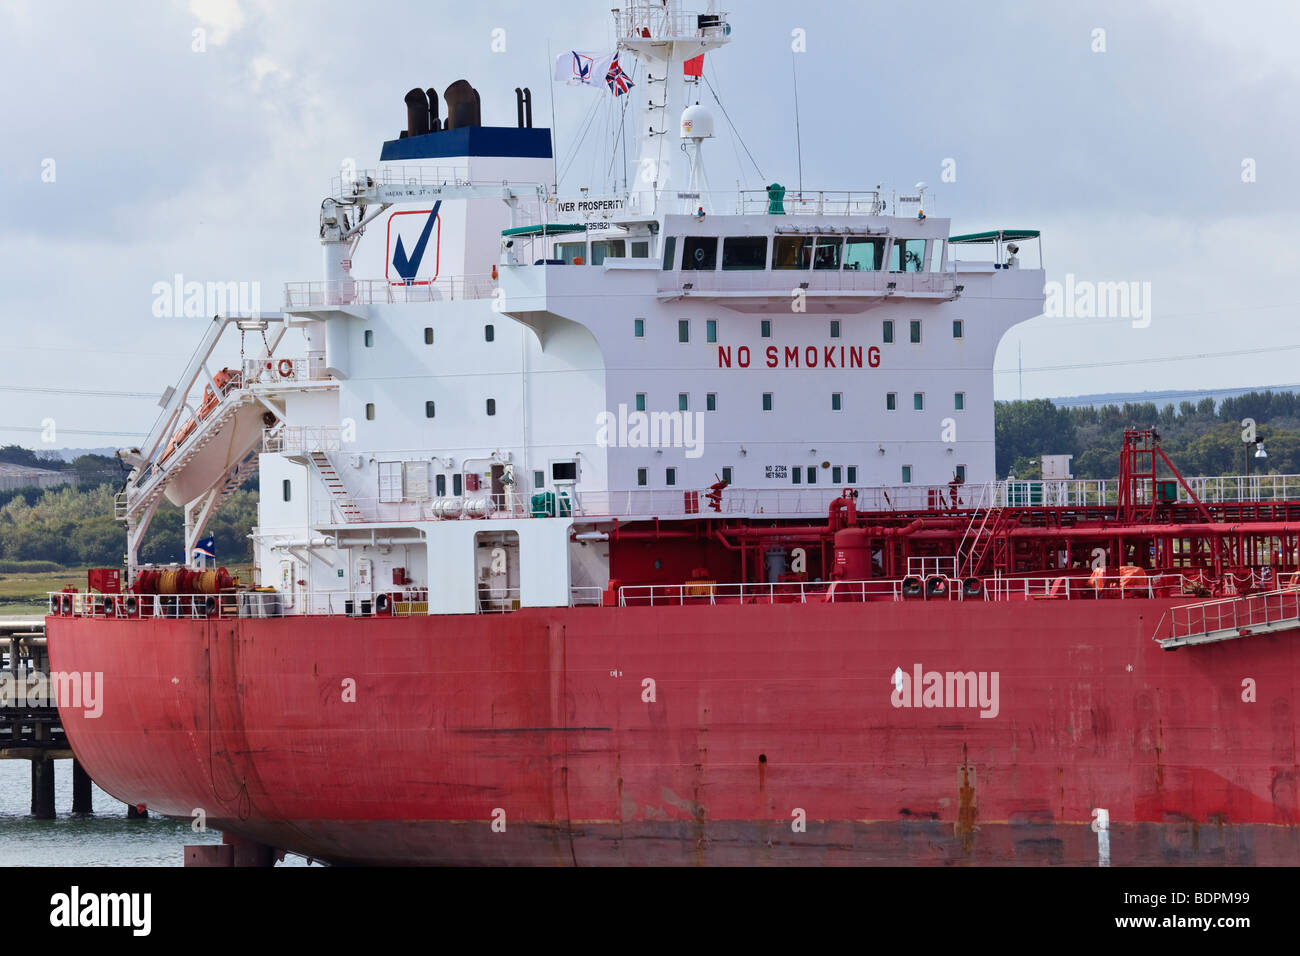 """Tankers """"Iver Prosperity"""" moored at Fawley Oil Terminal, Southampton Water, UK Stock Photo"""